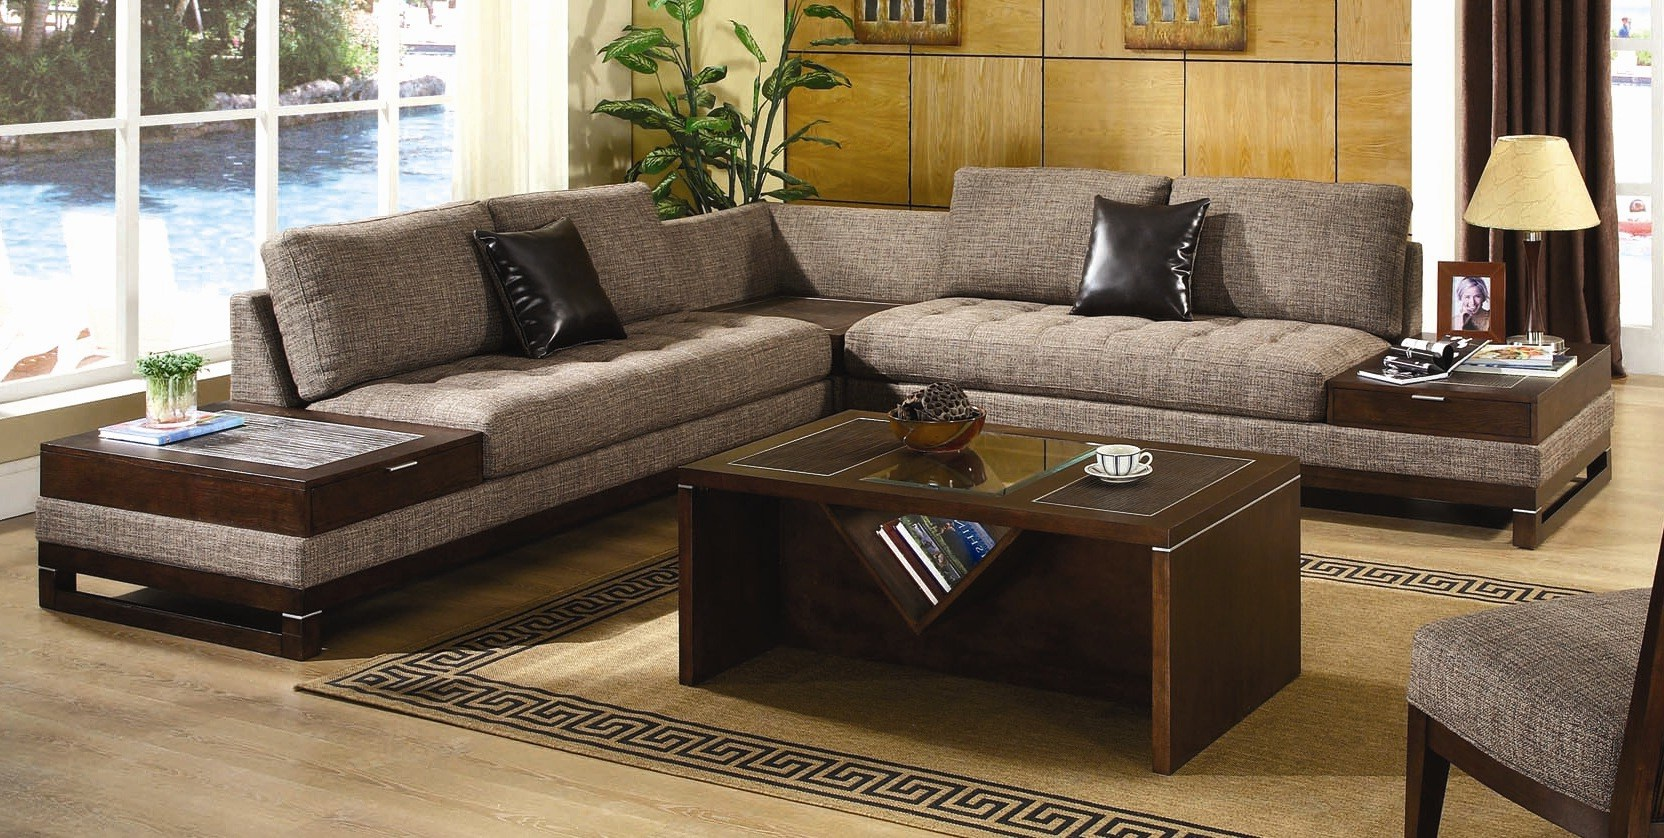 3 Piece Living Room Table Sets 24x24 Coffee Under 200 Walmart